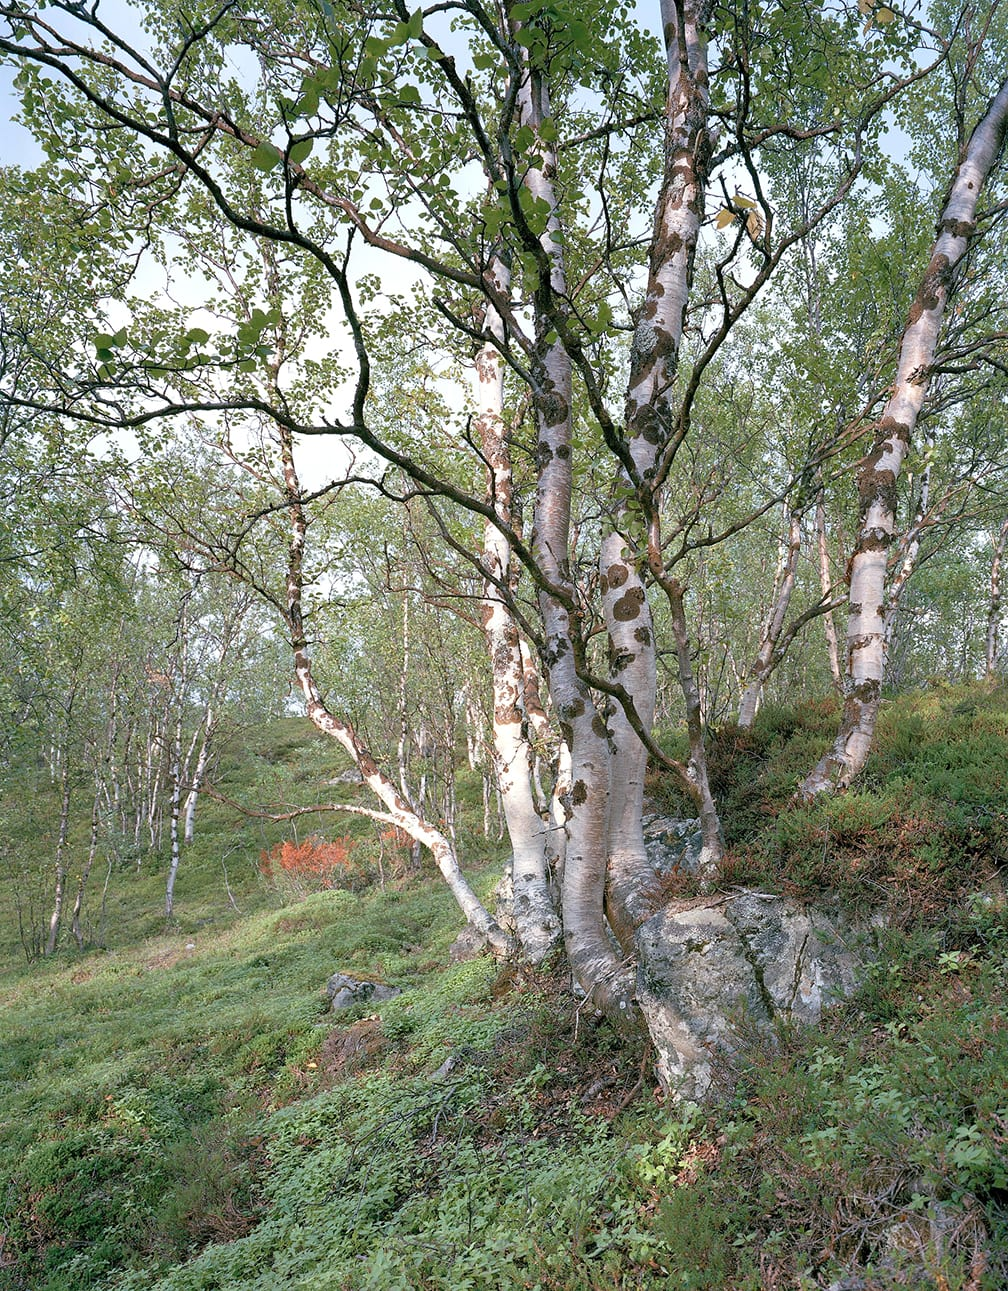 Birch Trees at Kafjord, Finnmark